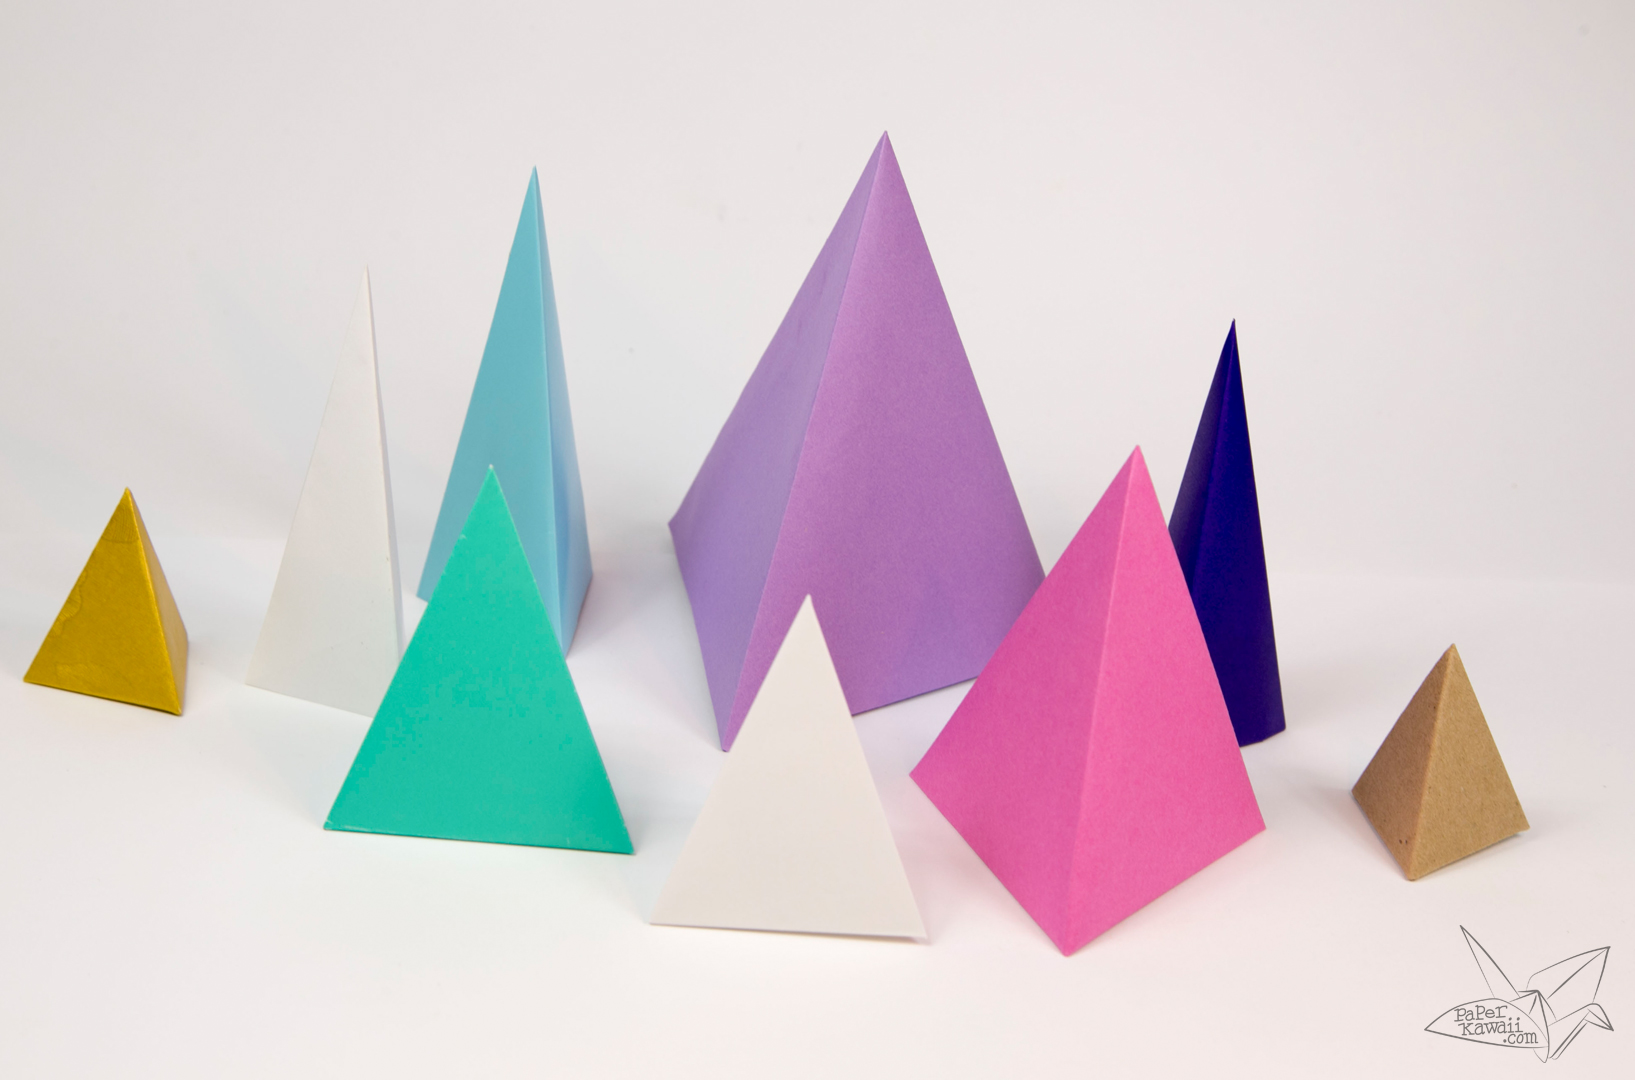 Origami Tetrahedron - 3 Sided Pyramid Tutorial - Paper Kawaii - photo#1